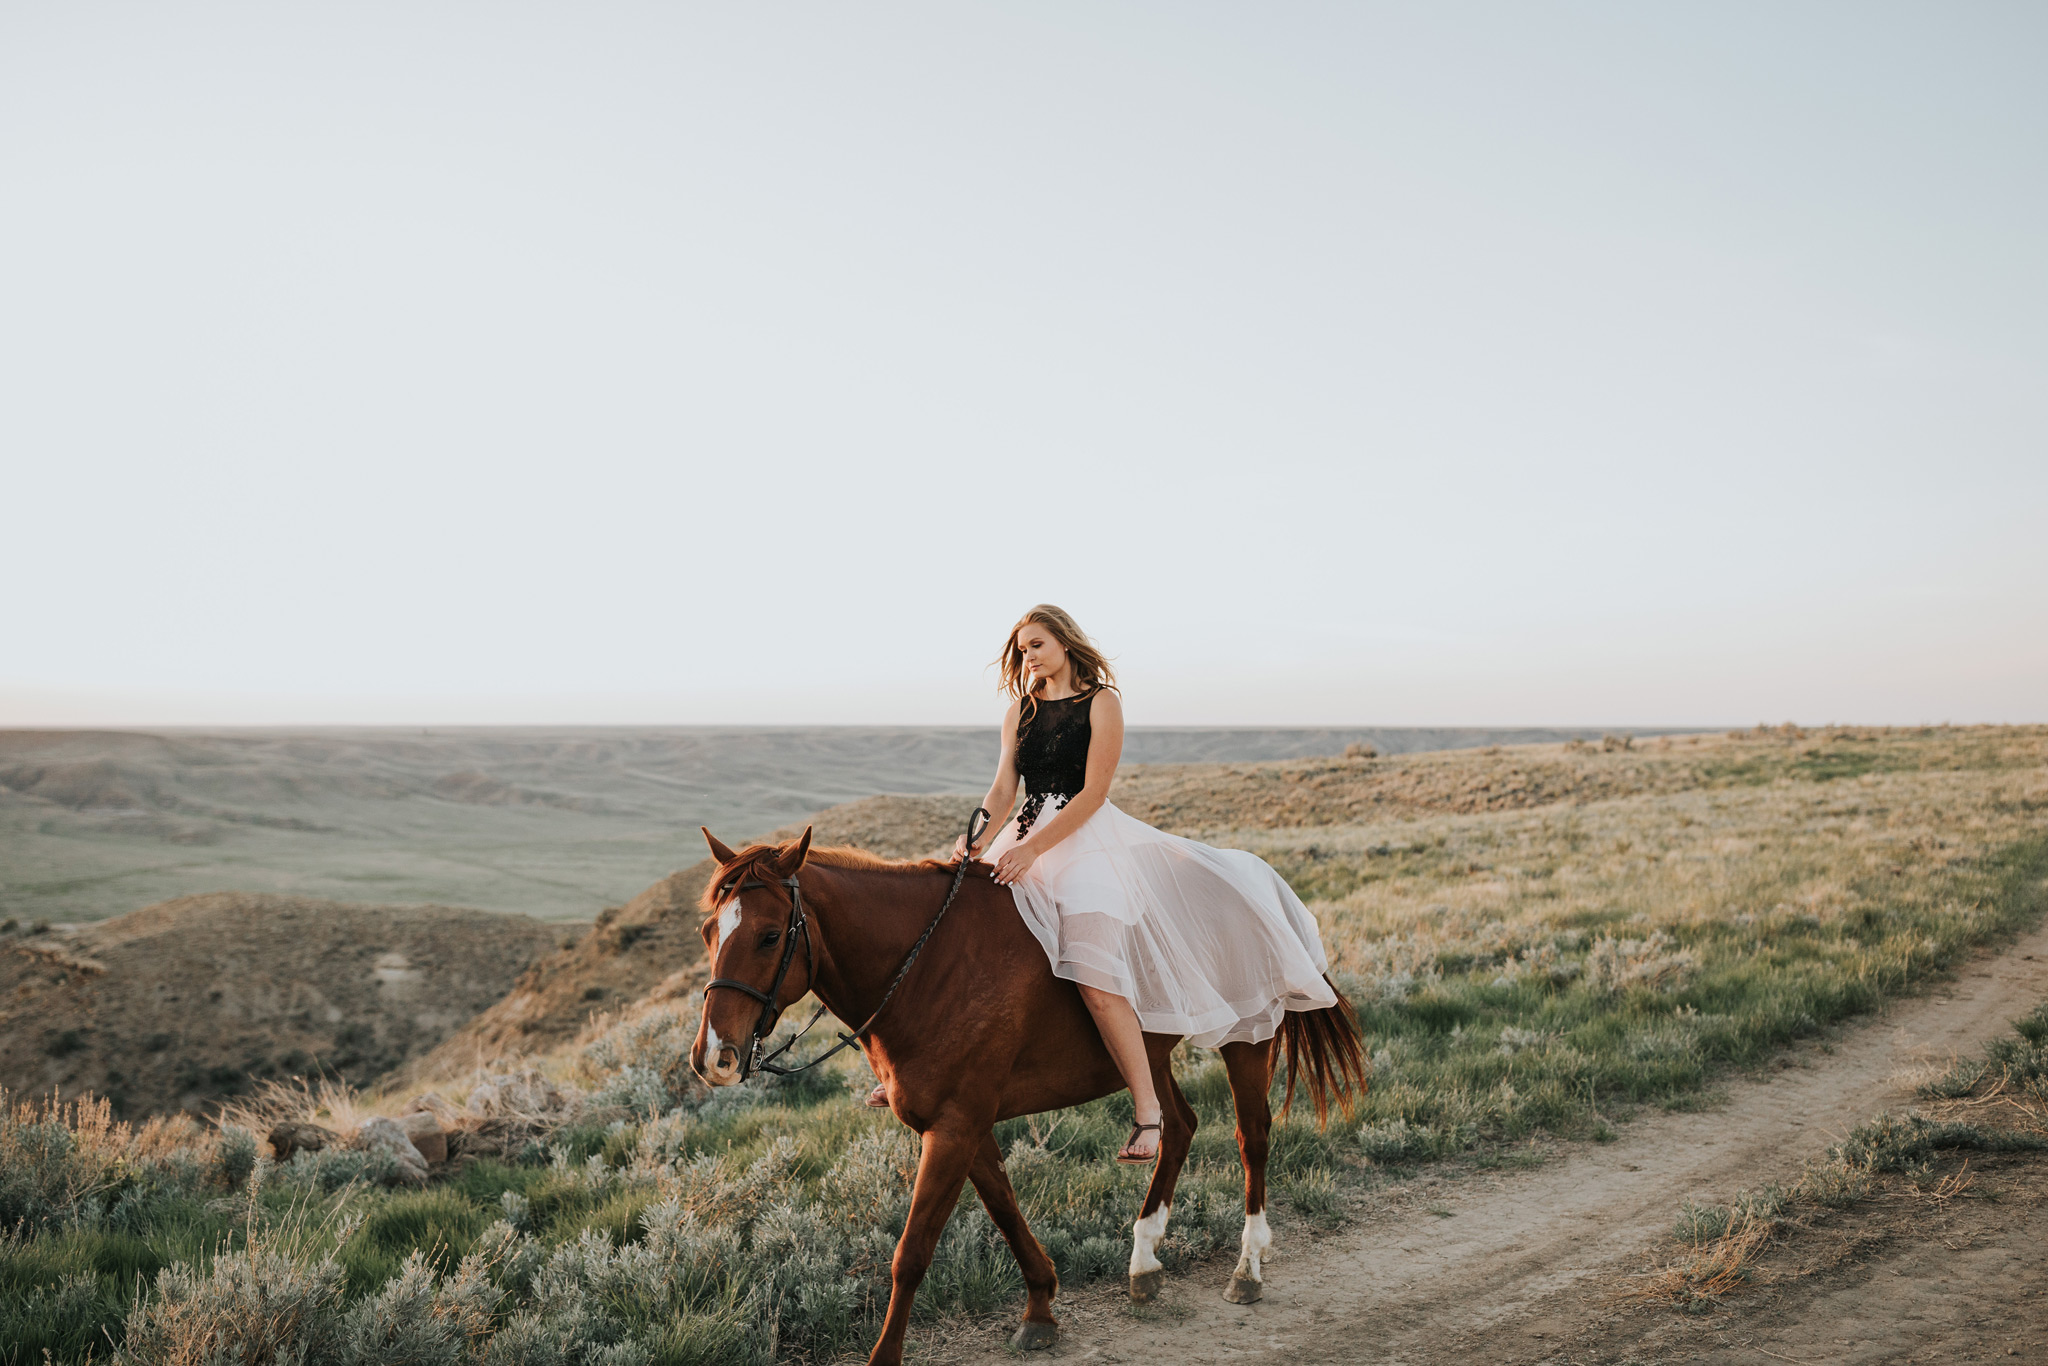 girl in grad dress riding horse